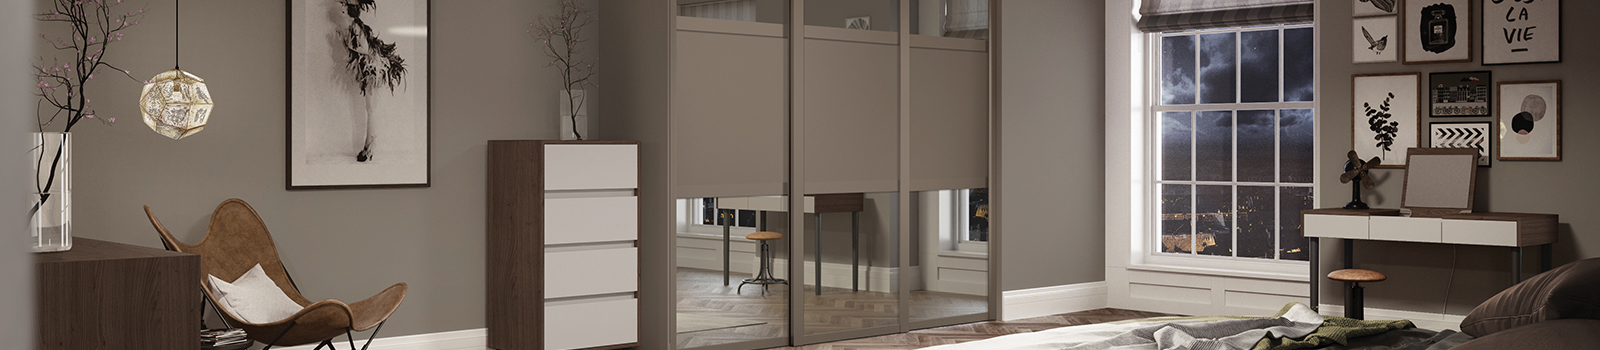 Made-to-Measure Sliding Wardrobe Doors | B&Q on